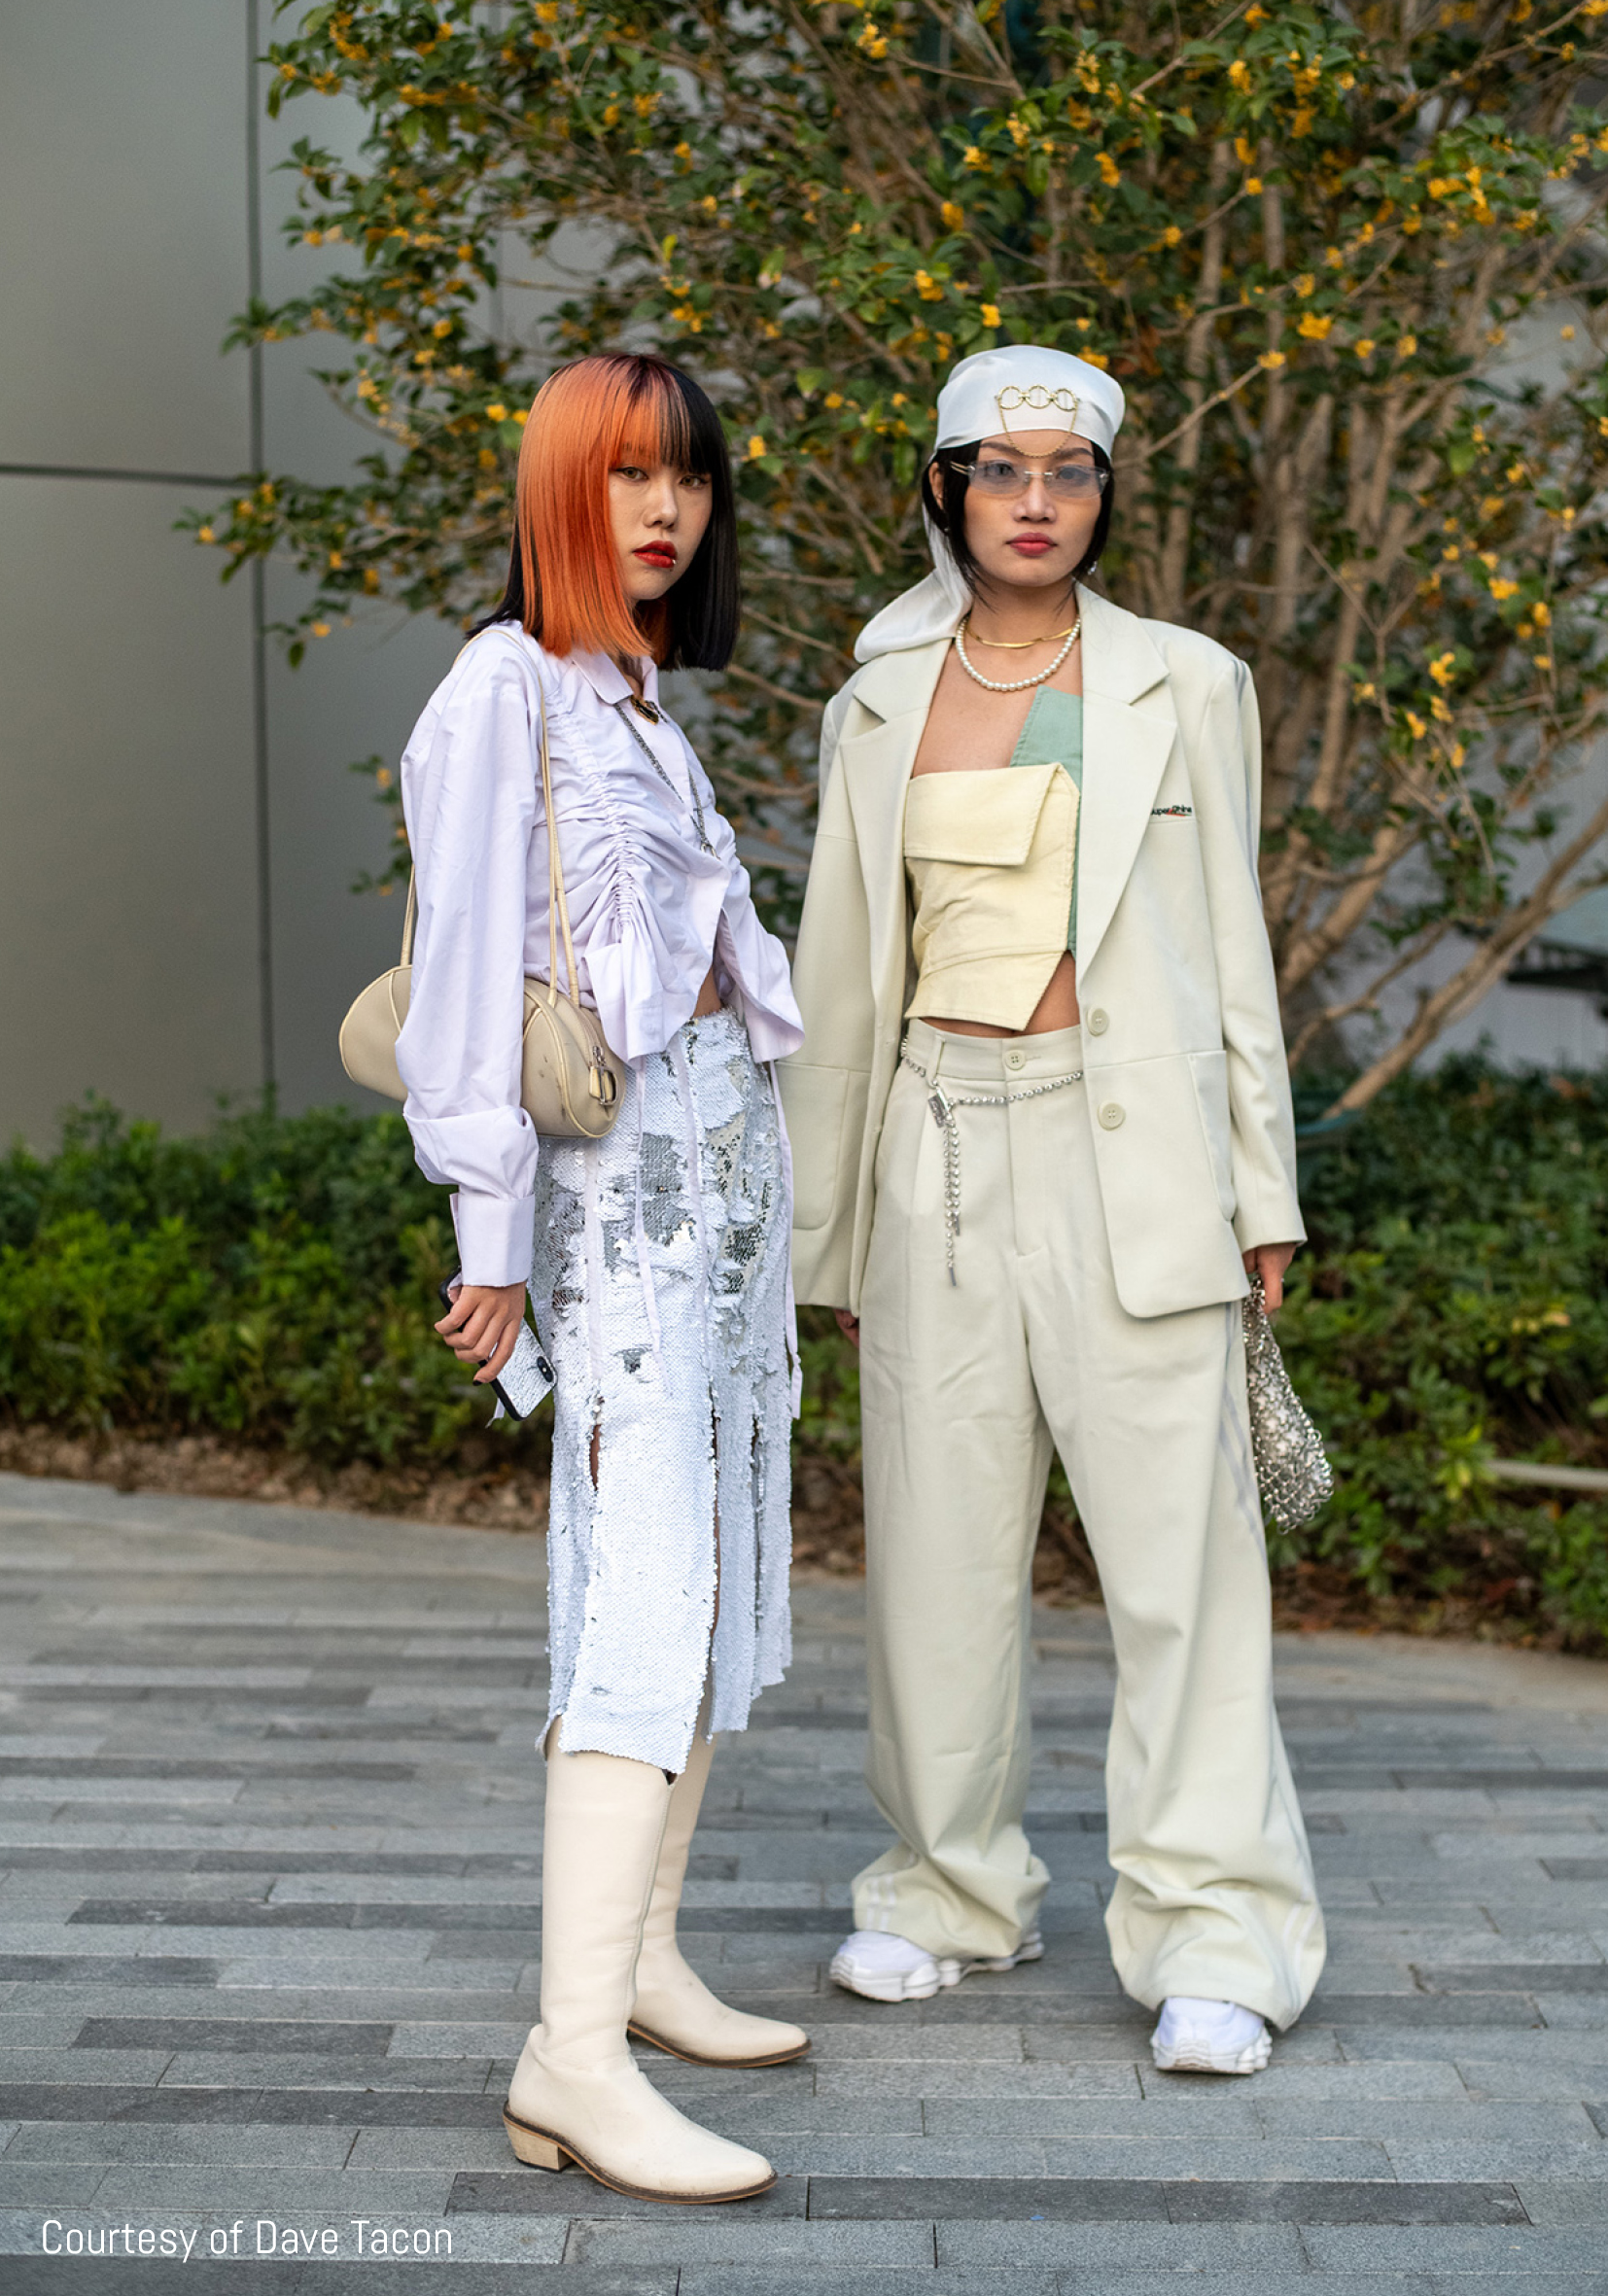 Streetstylers pose in neutral tones by Dave Tacon at Shanghai Fashion Week SS21